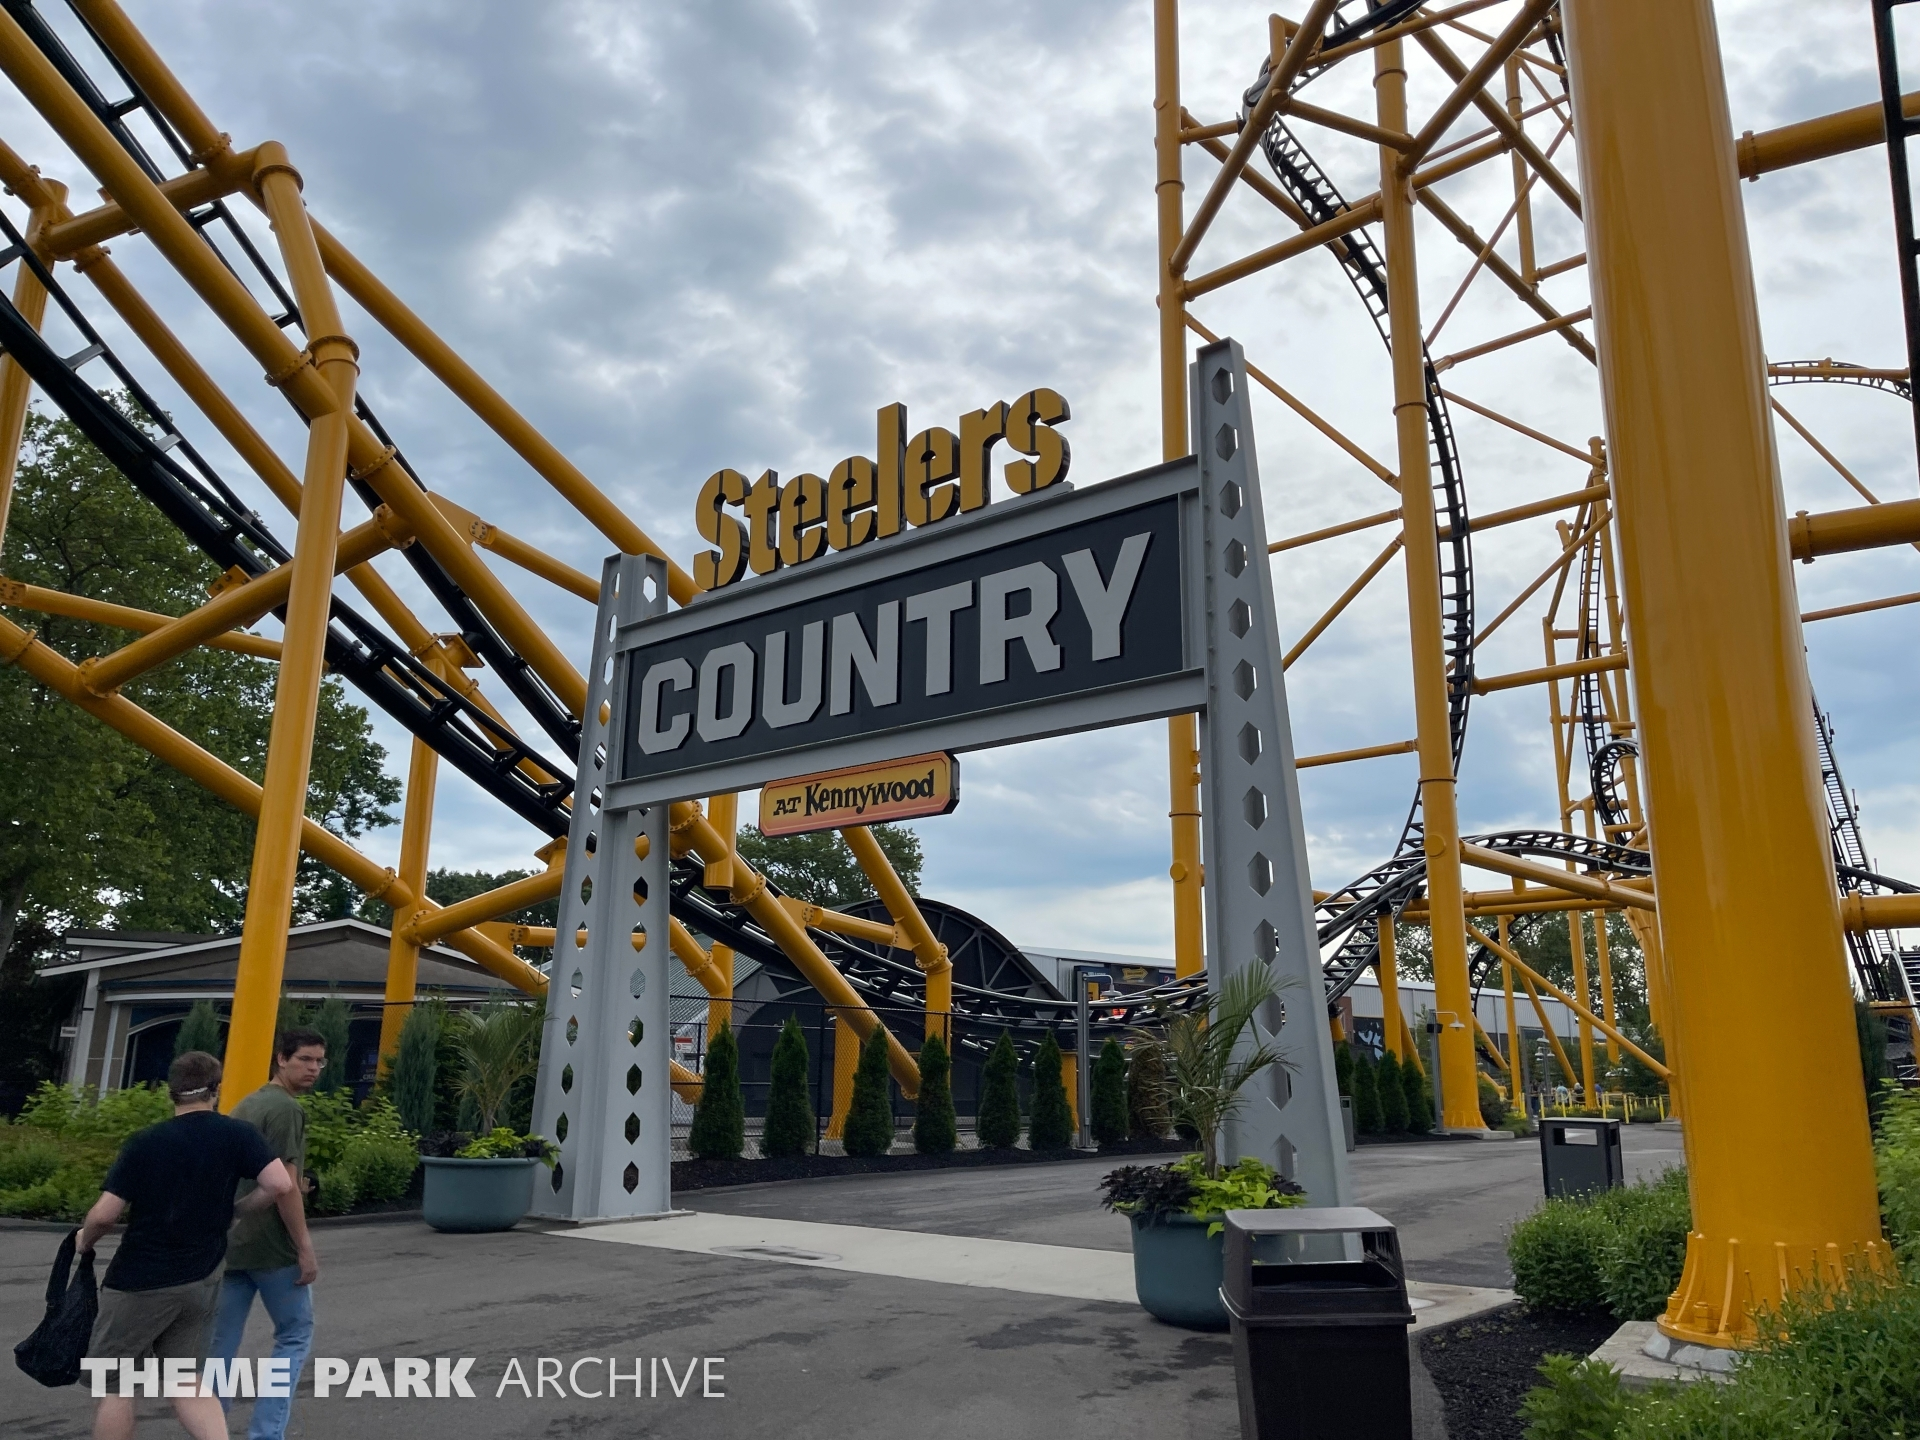 Steelers Country at Kennywood